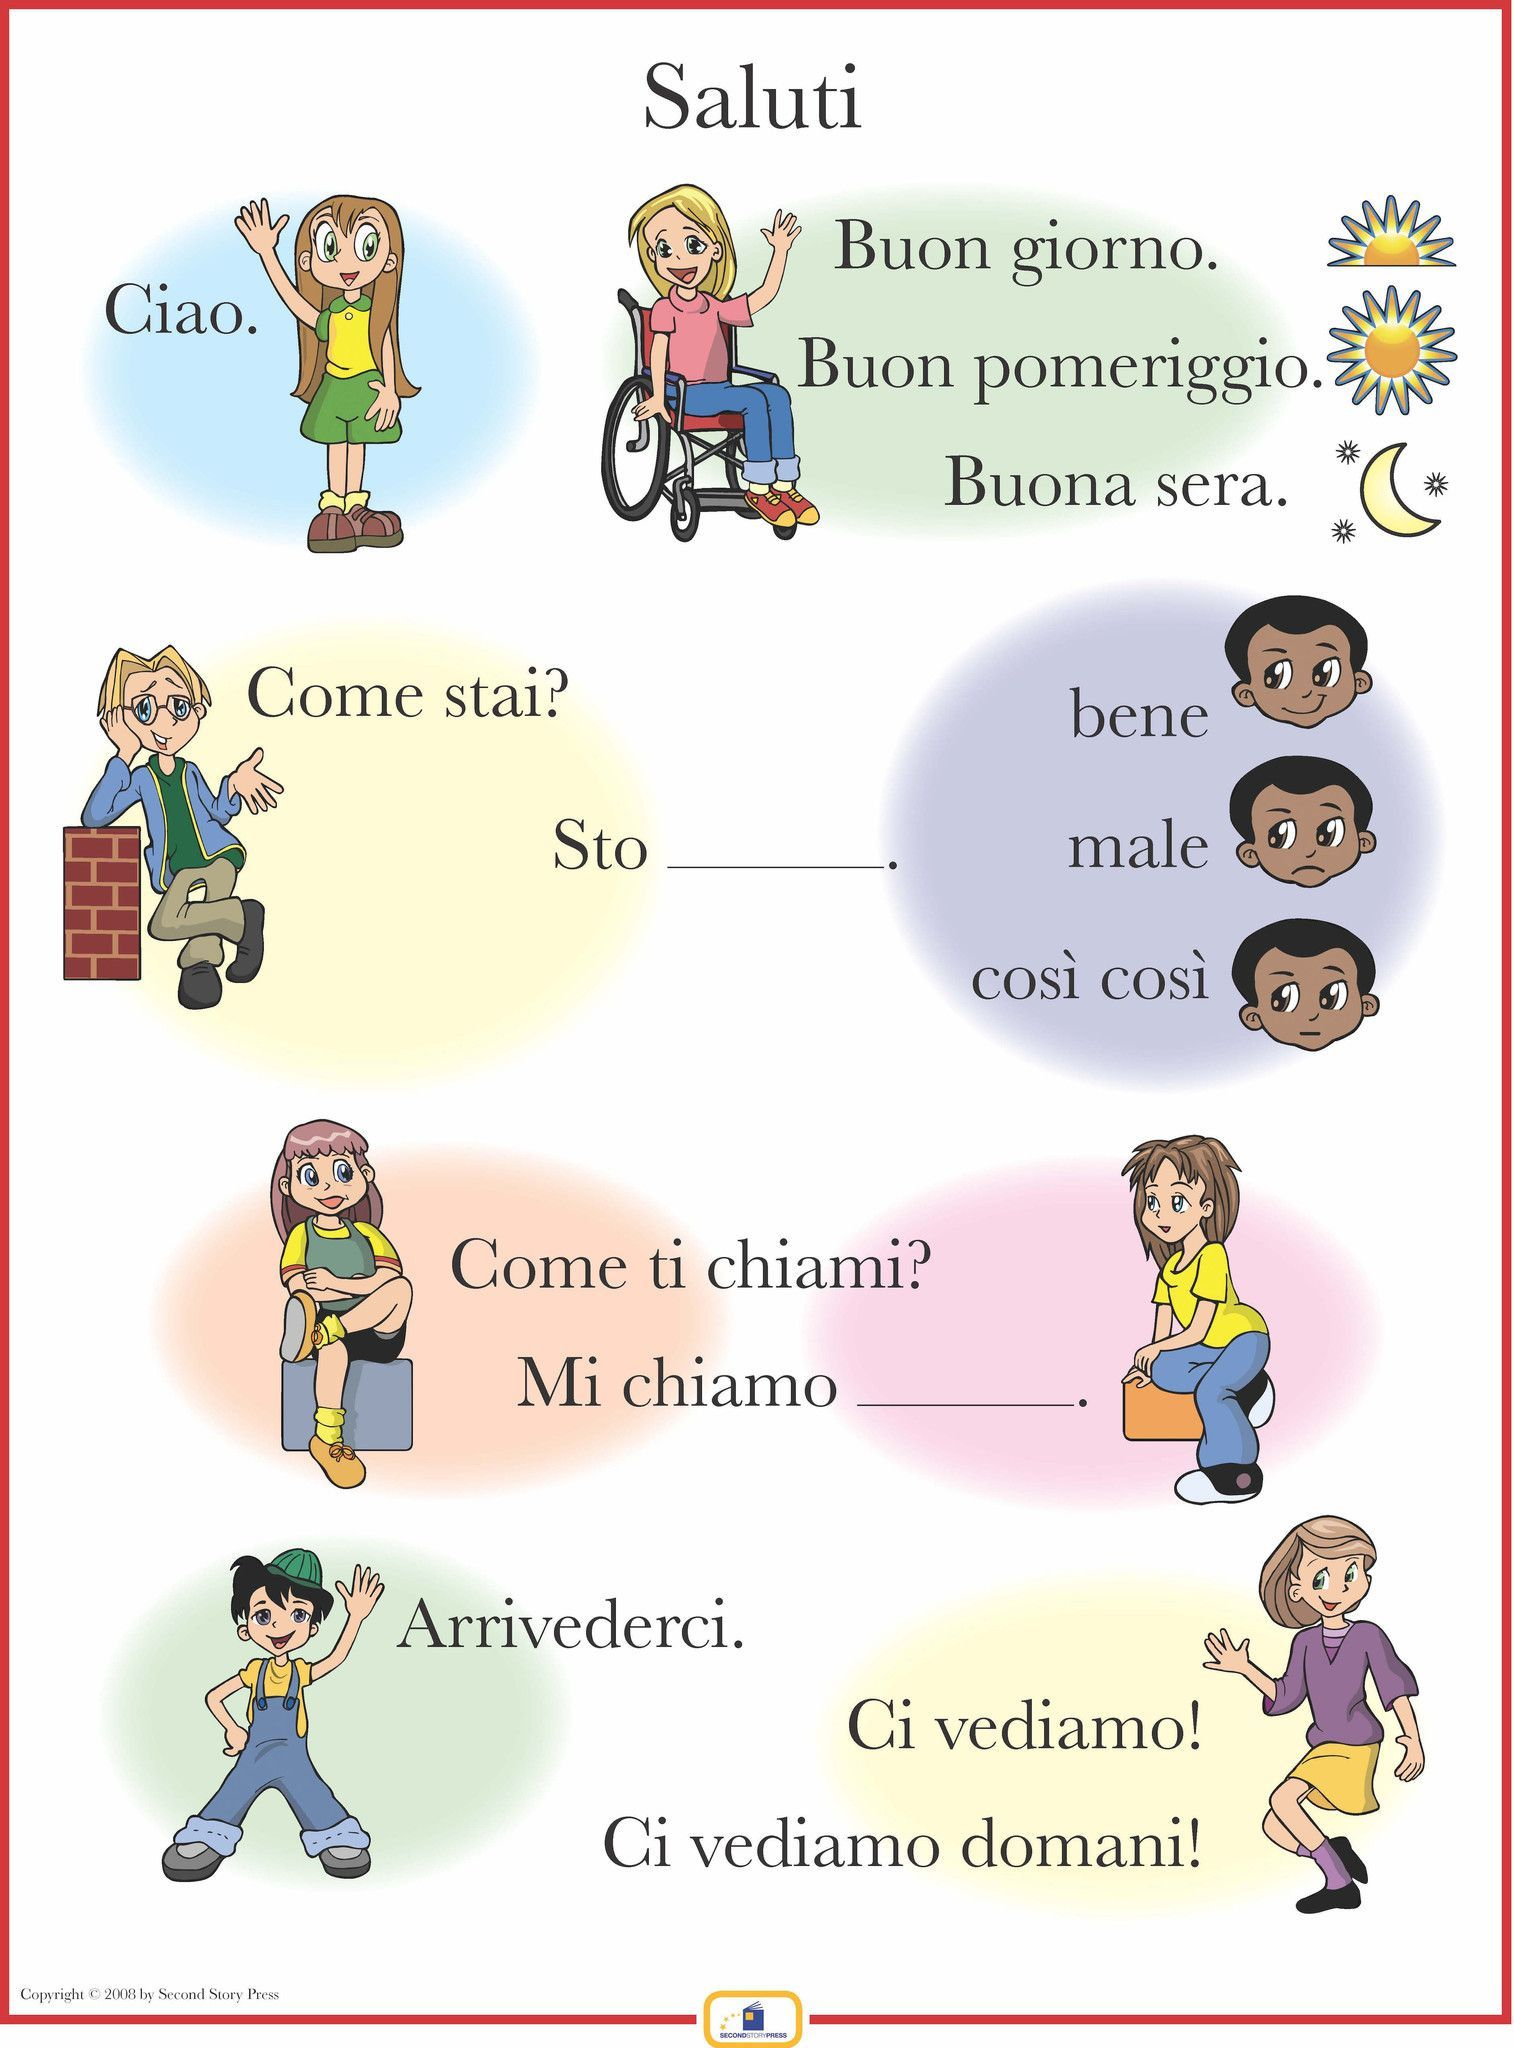 Italian Sign Language Love Italian Greetings Poster Italian